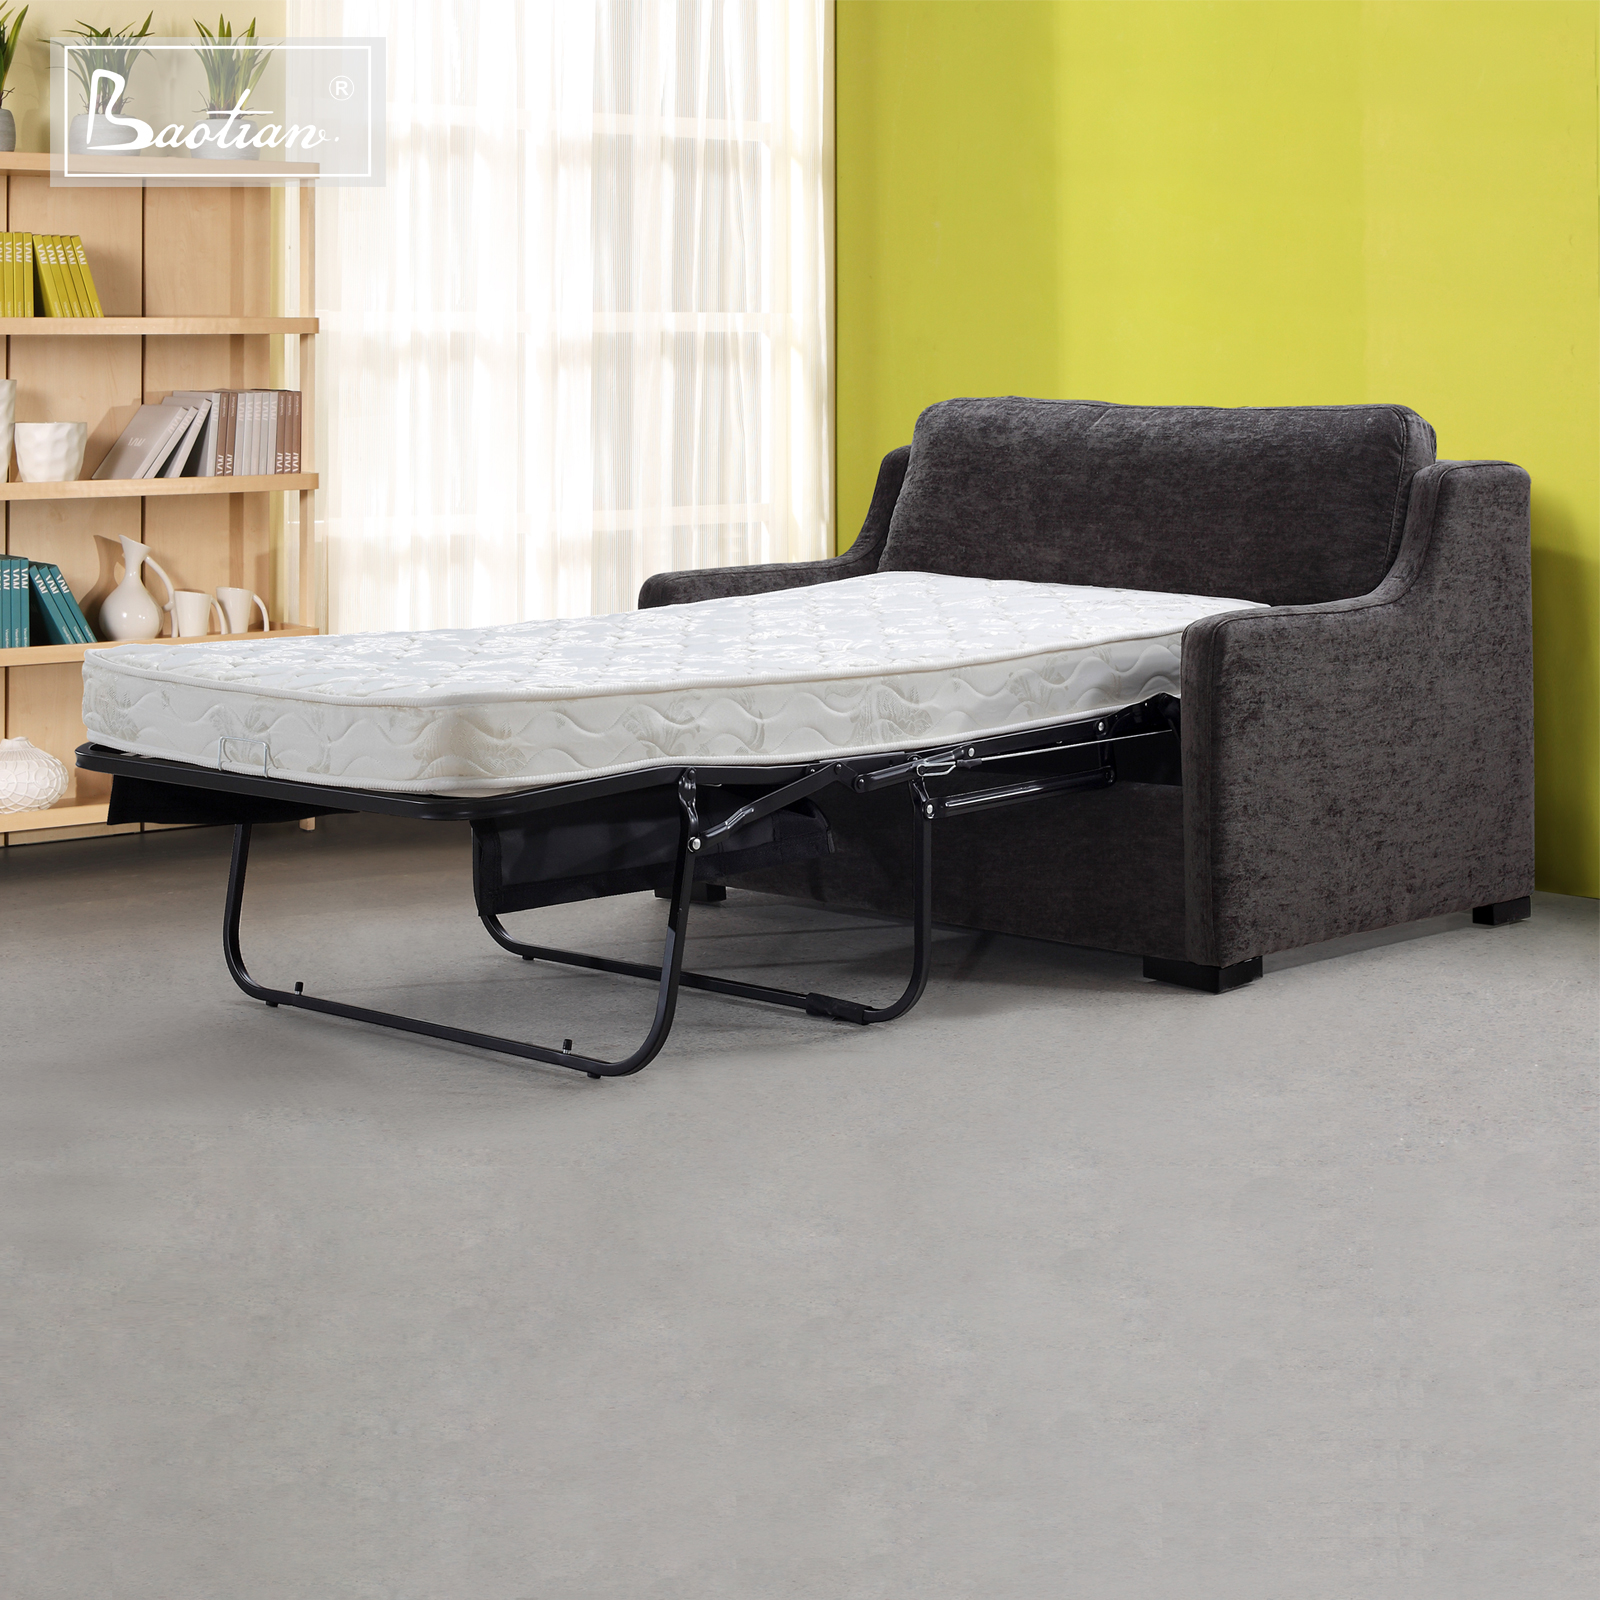 Folding Sofa Bed, Folding Sofa Bed Suppliers And Manufacturers At